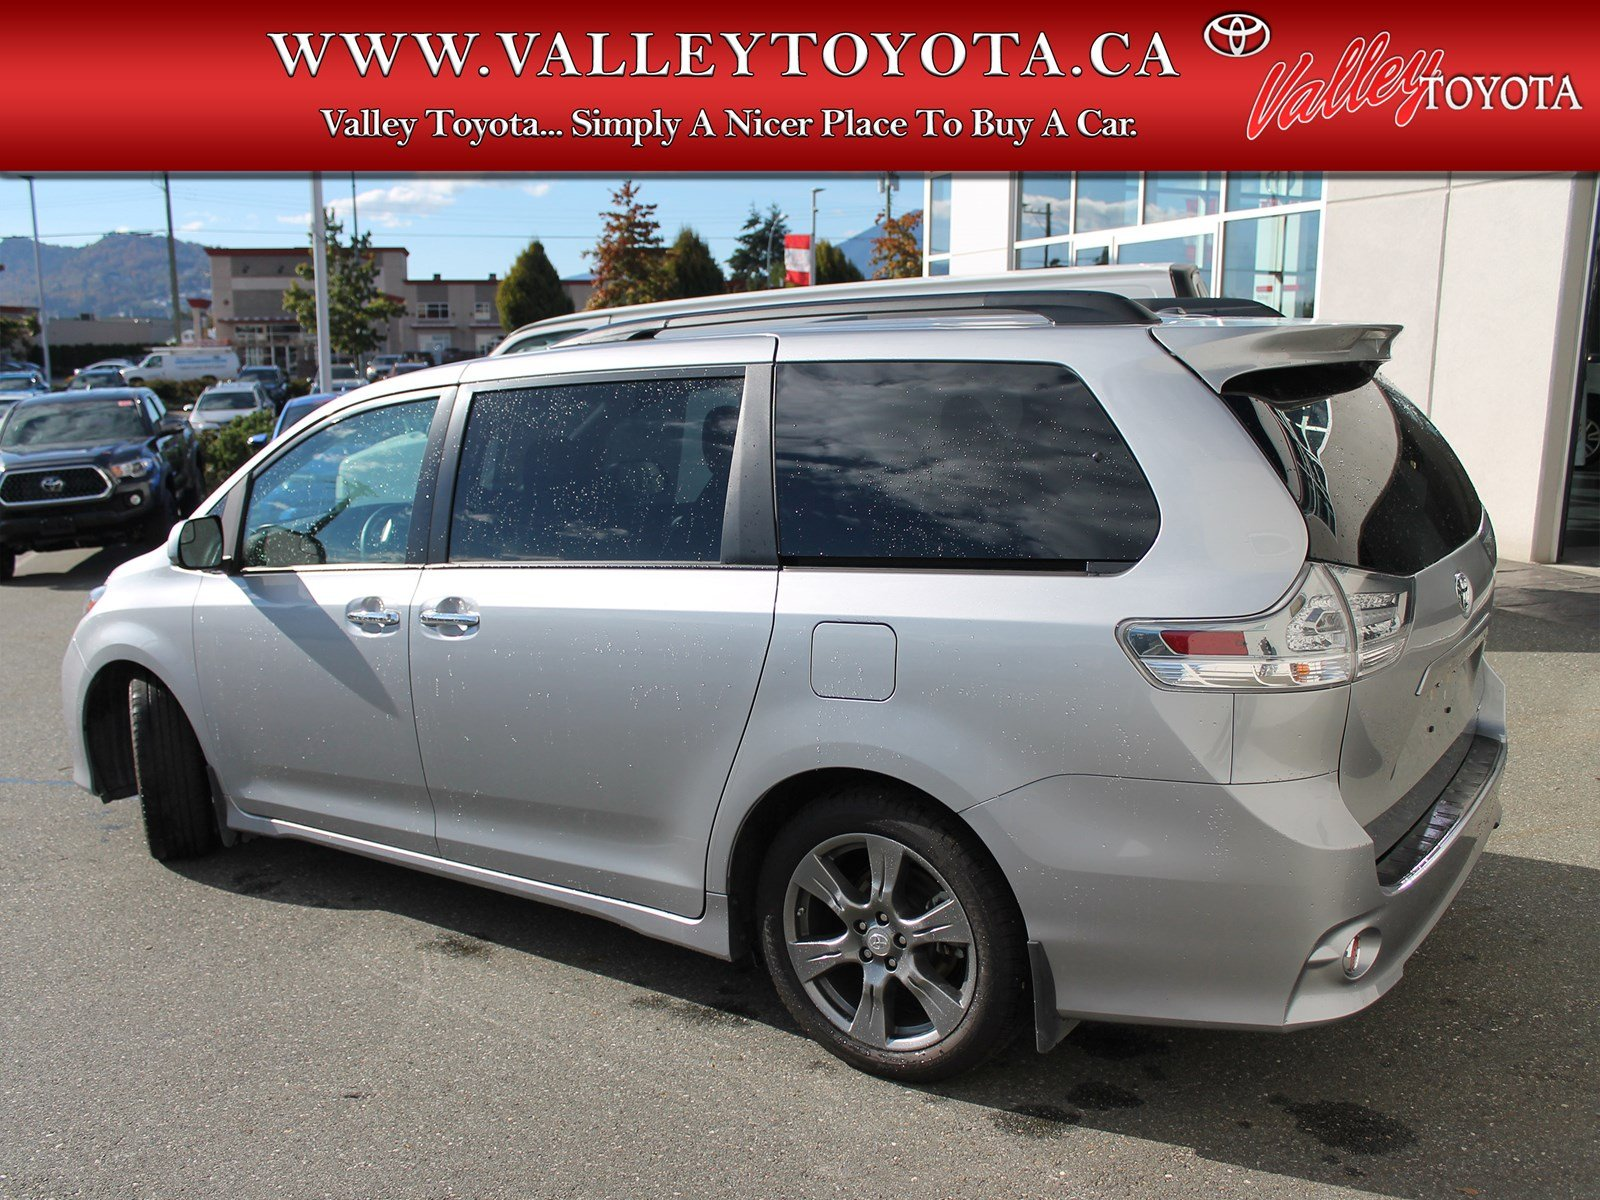 Toyota Sienna Service Manual: Open in One Side of CAN Branch Line